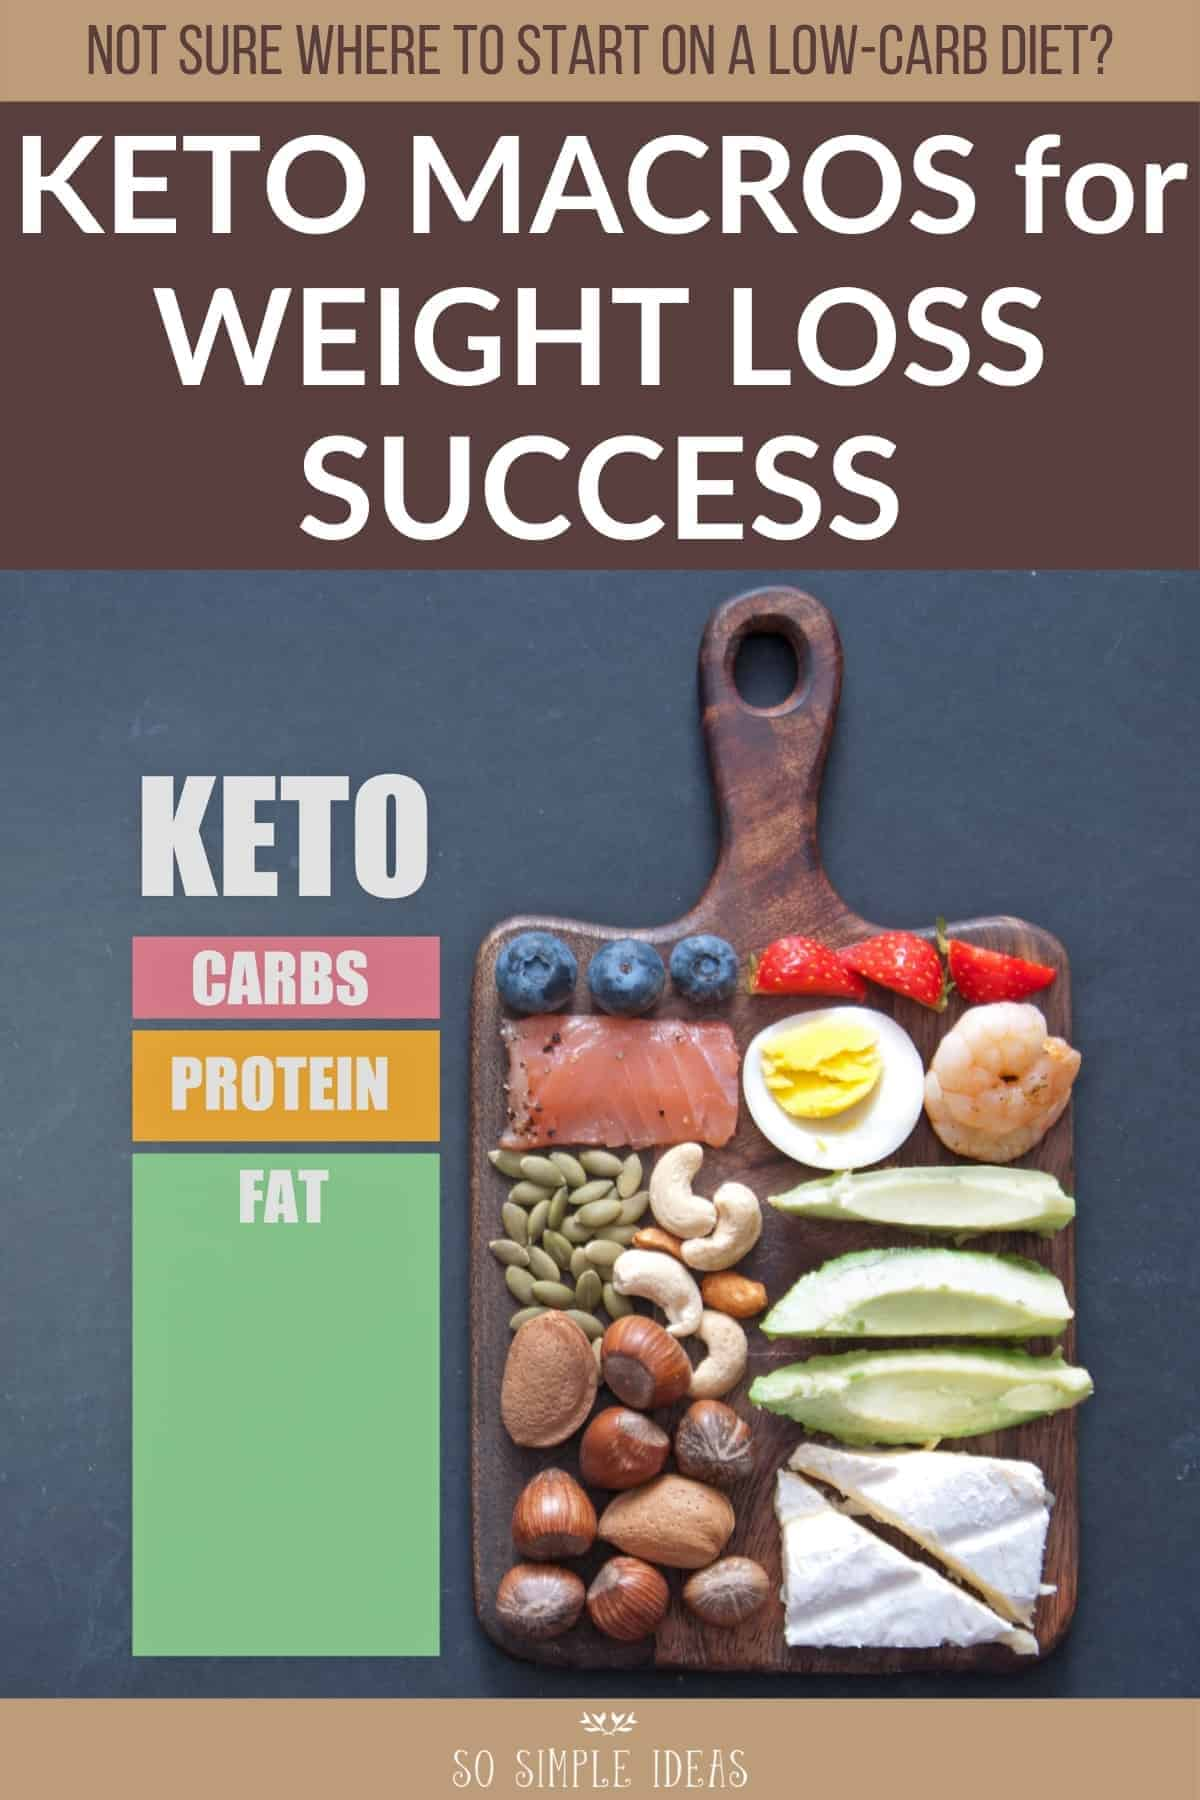 keto macros for weight loss success cover image